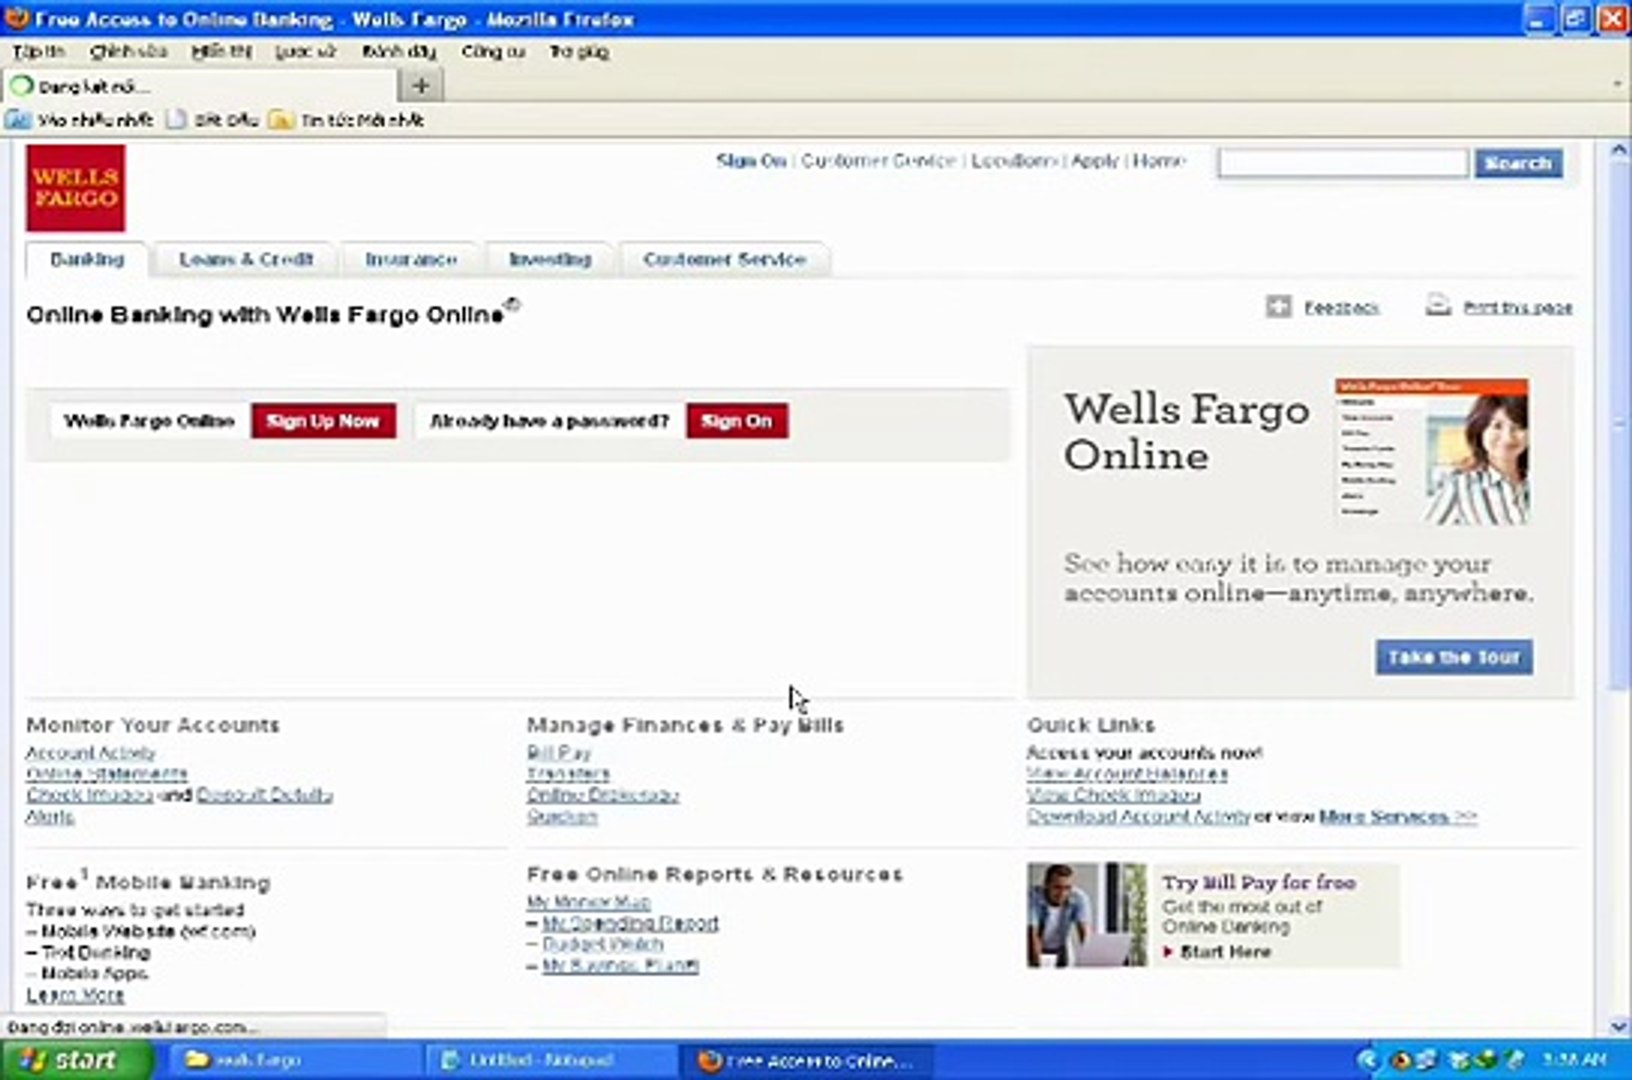 How to transfer, cash out Bank logins - wells fargo 27k- Bank logins  transfer, cash out toturial